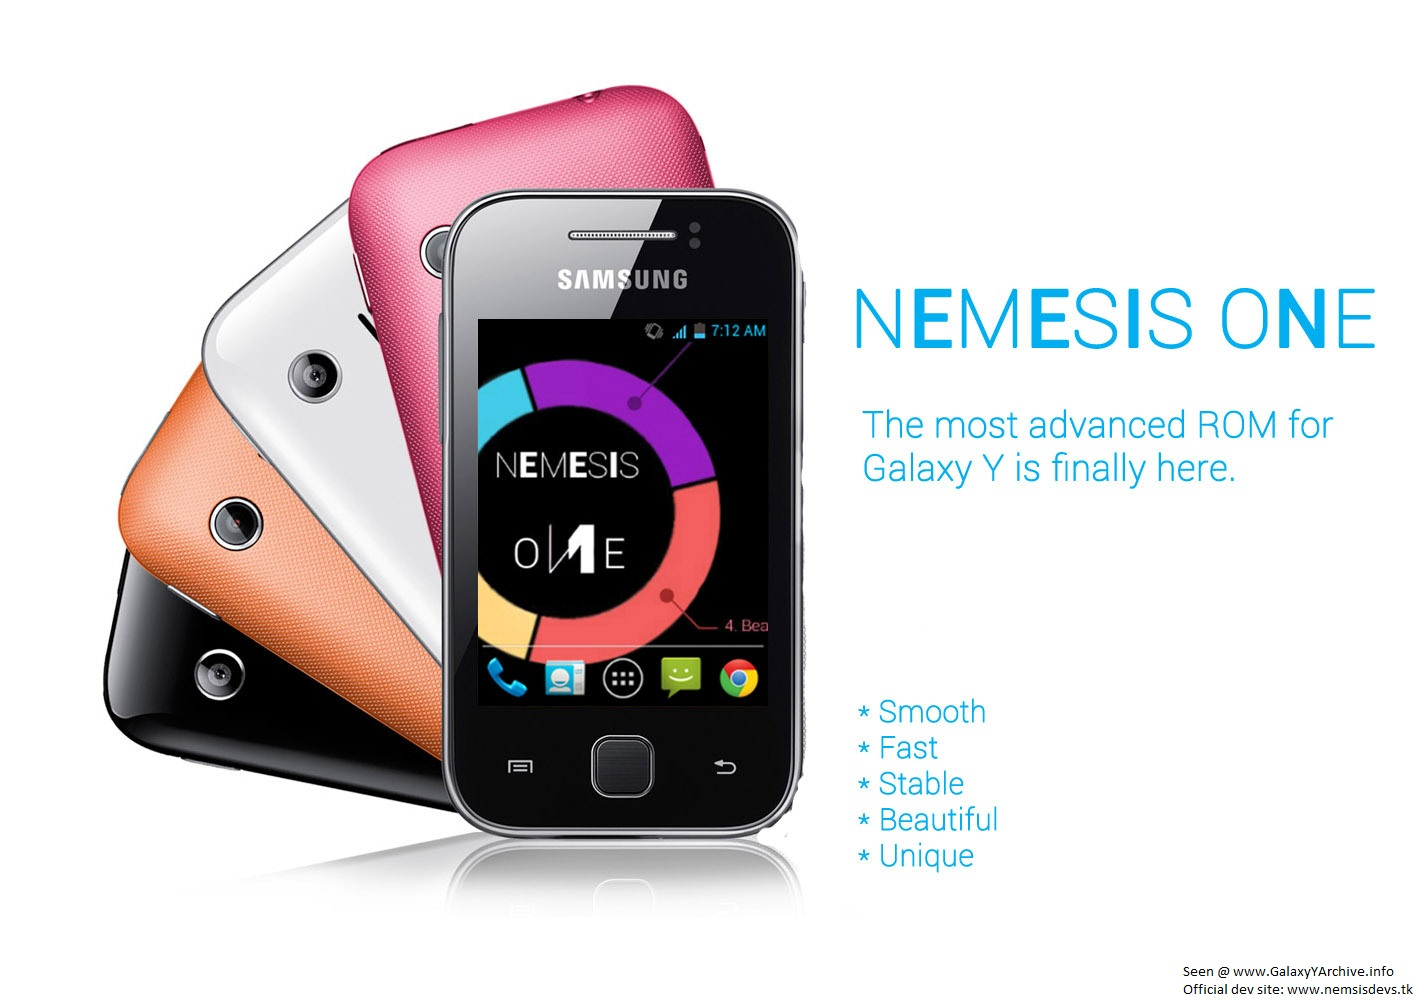 ROM] Nemesis One and Nemesis One HD for Samsung Galaxy Y (GT-S5360)